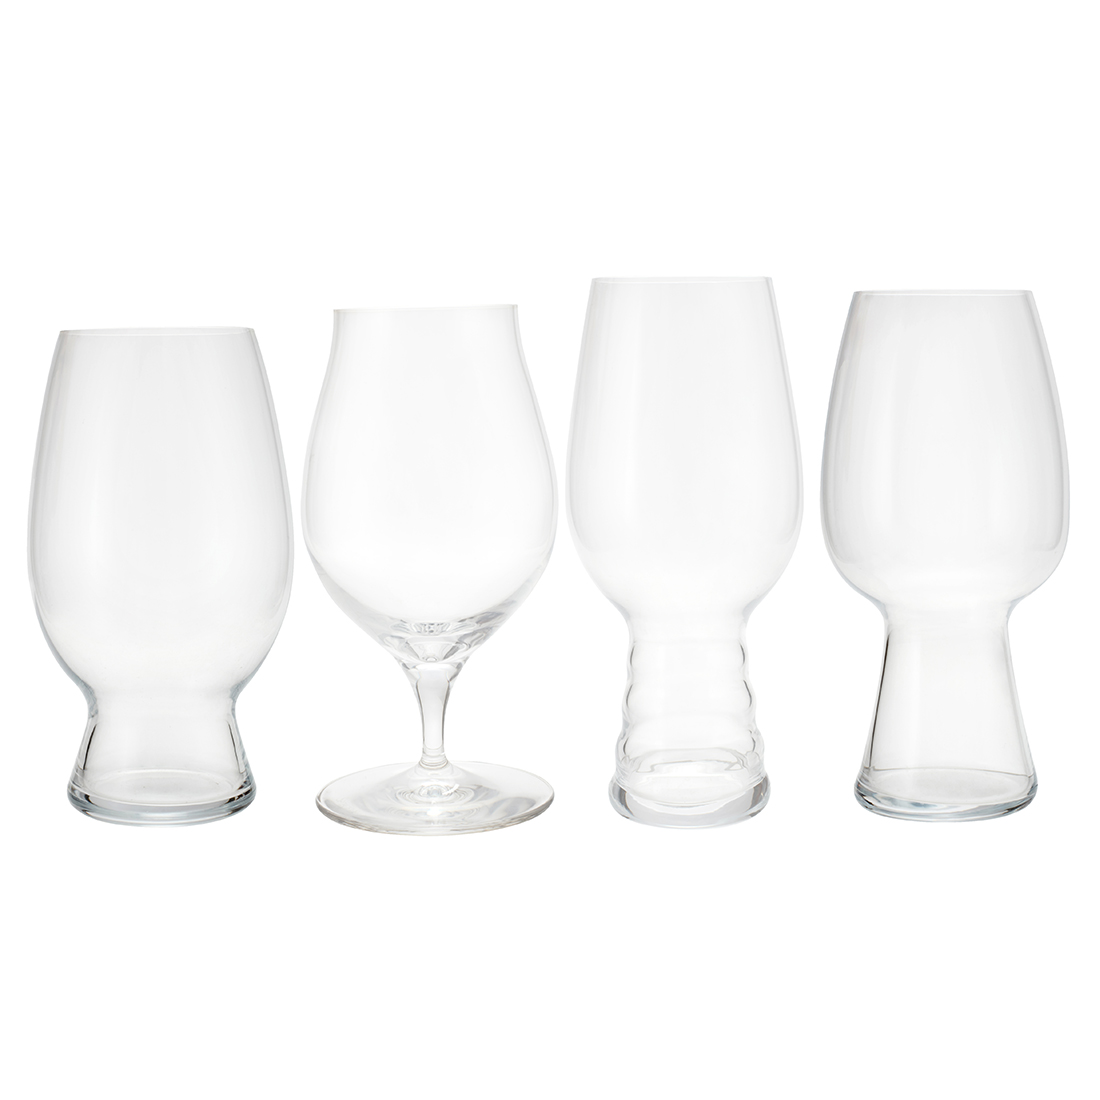 Spiegelau Craft Beer Glasses Set Of 4 Crystalline Glass Glasses & Tumblers in Glass Colour by Living Essence